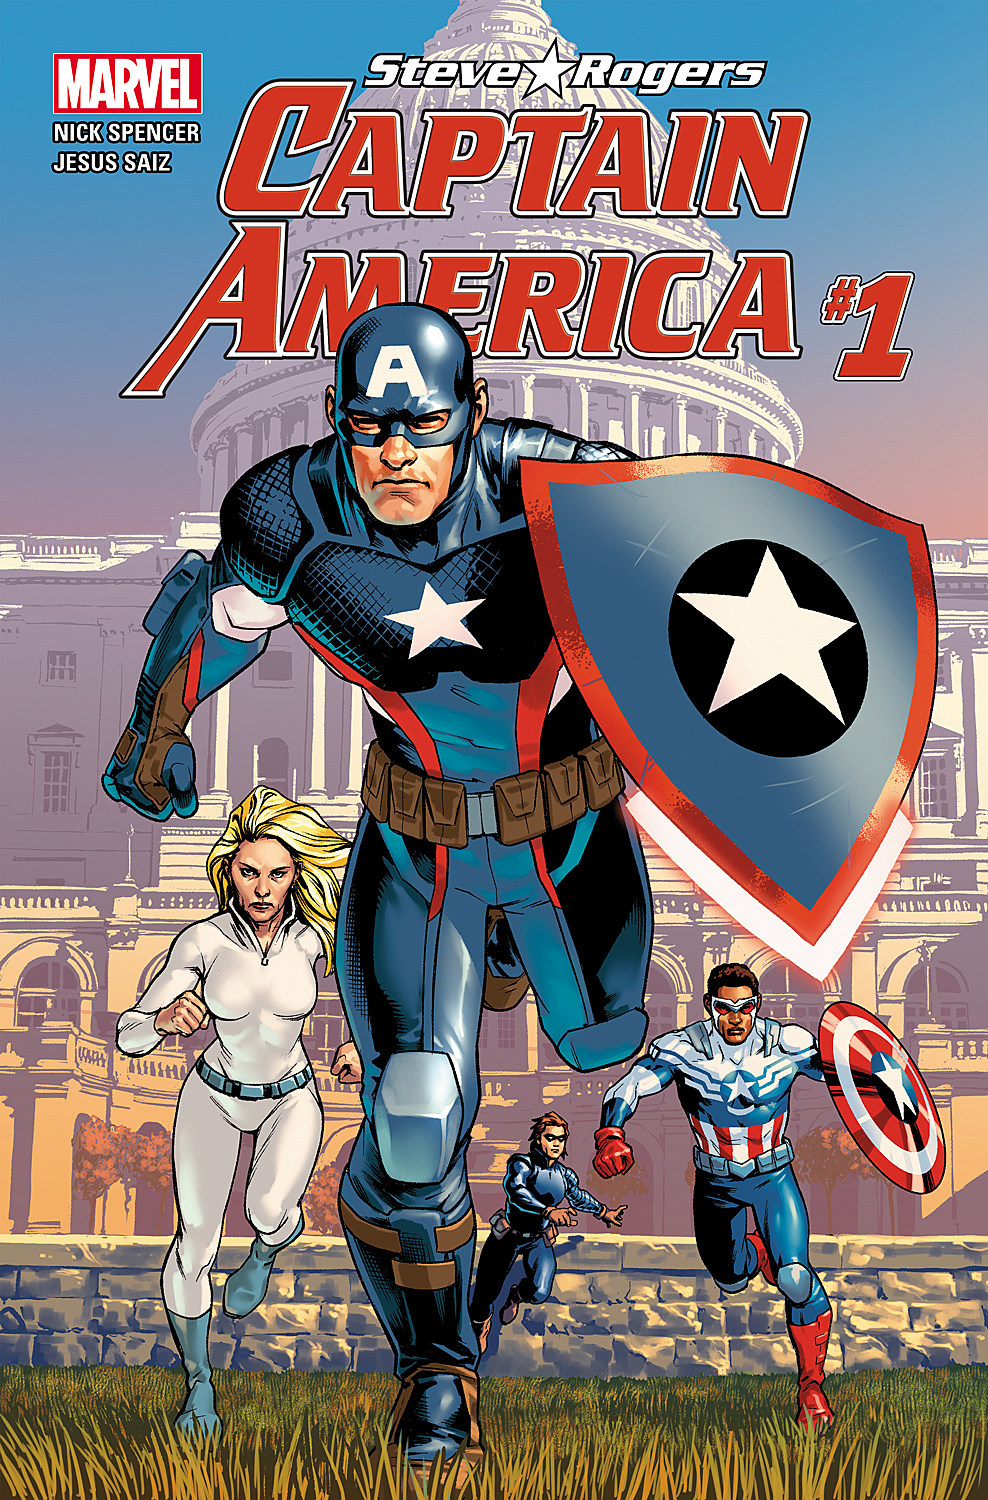 the unsurprising return of steve rogers as captain america. Black Bedroom Furniture Sets. Home Design Ideas